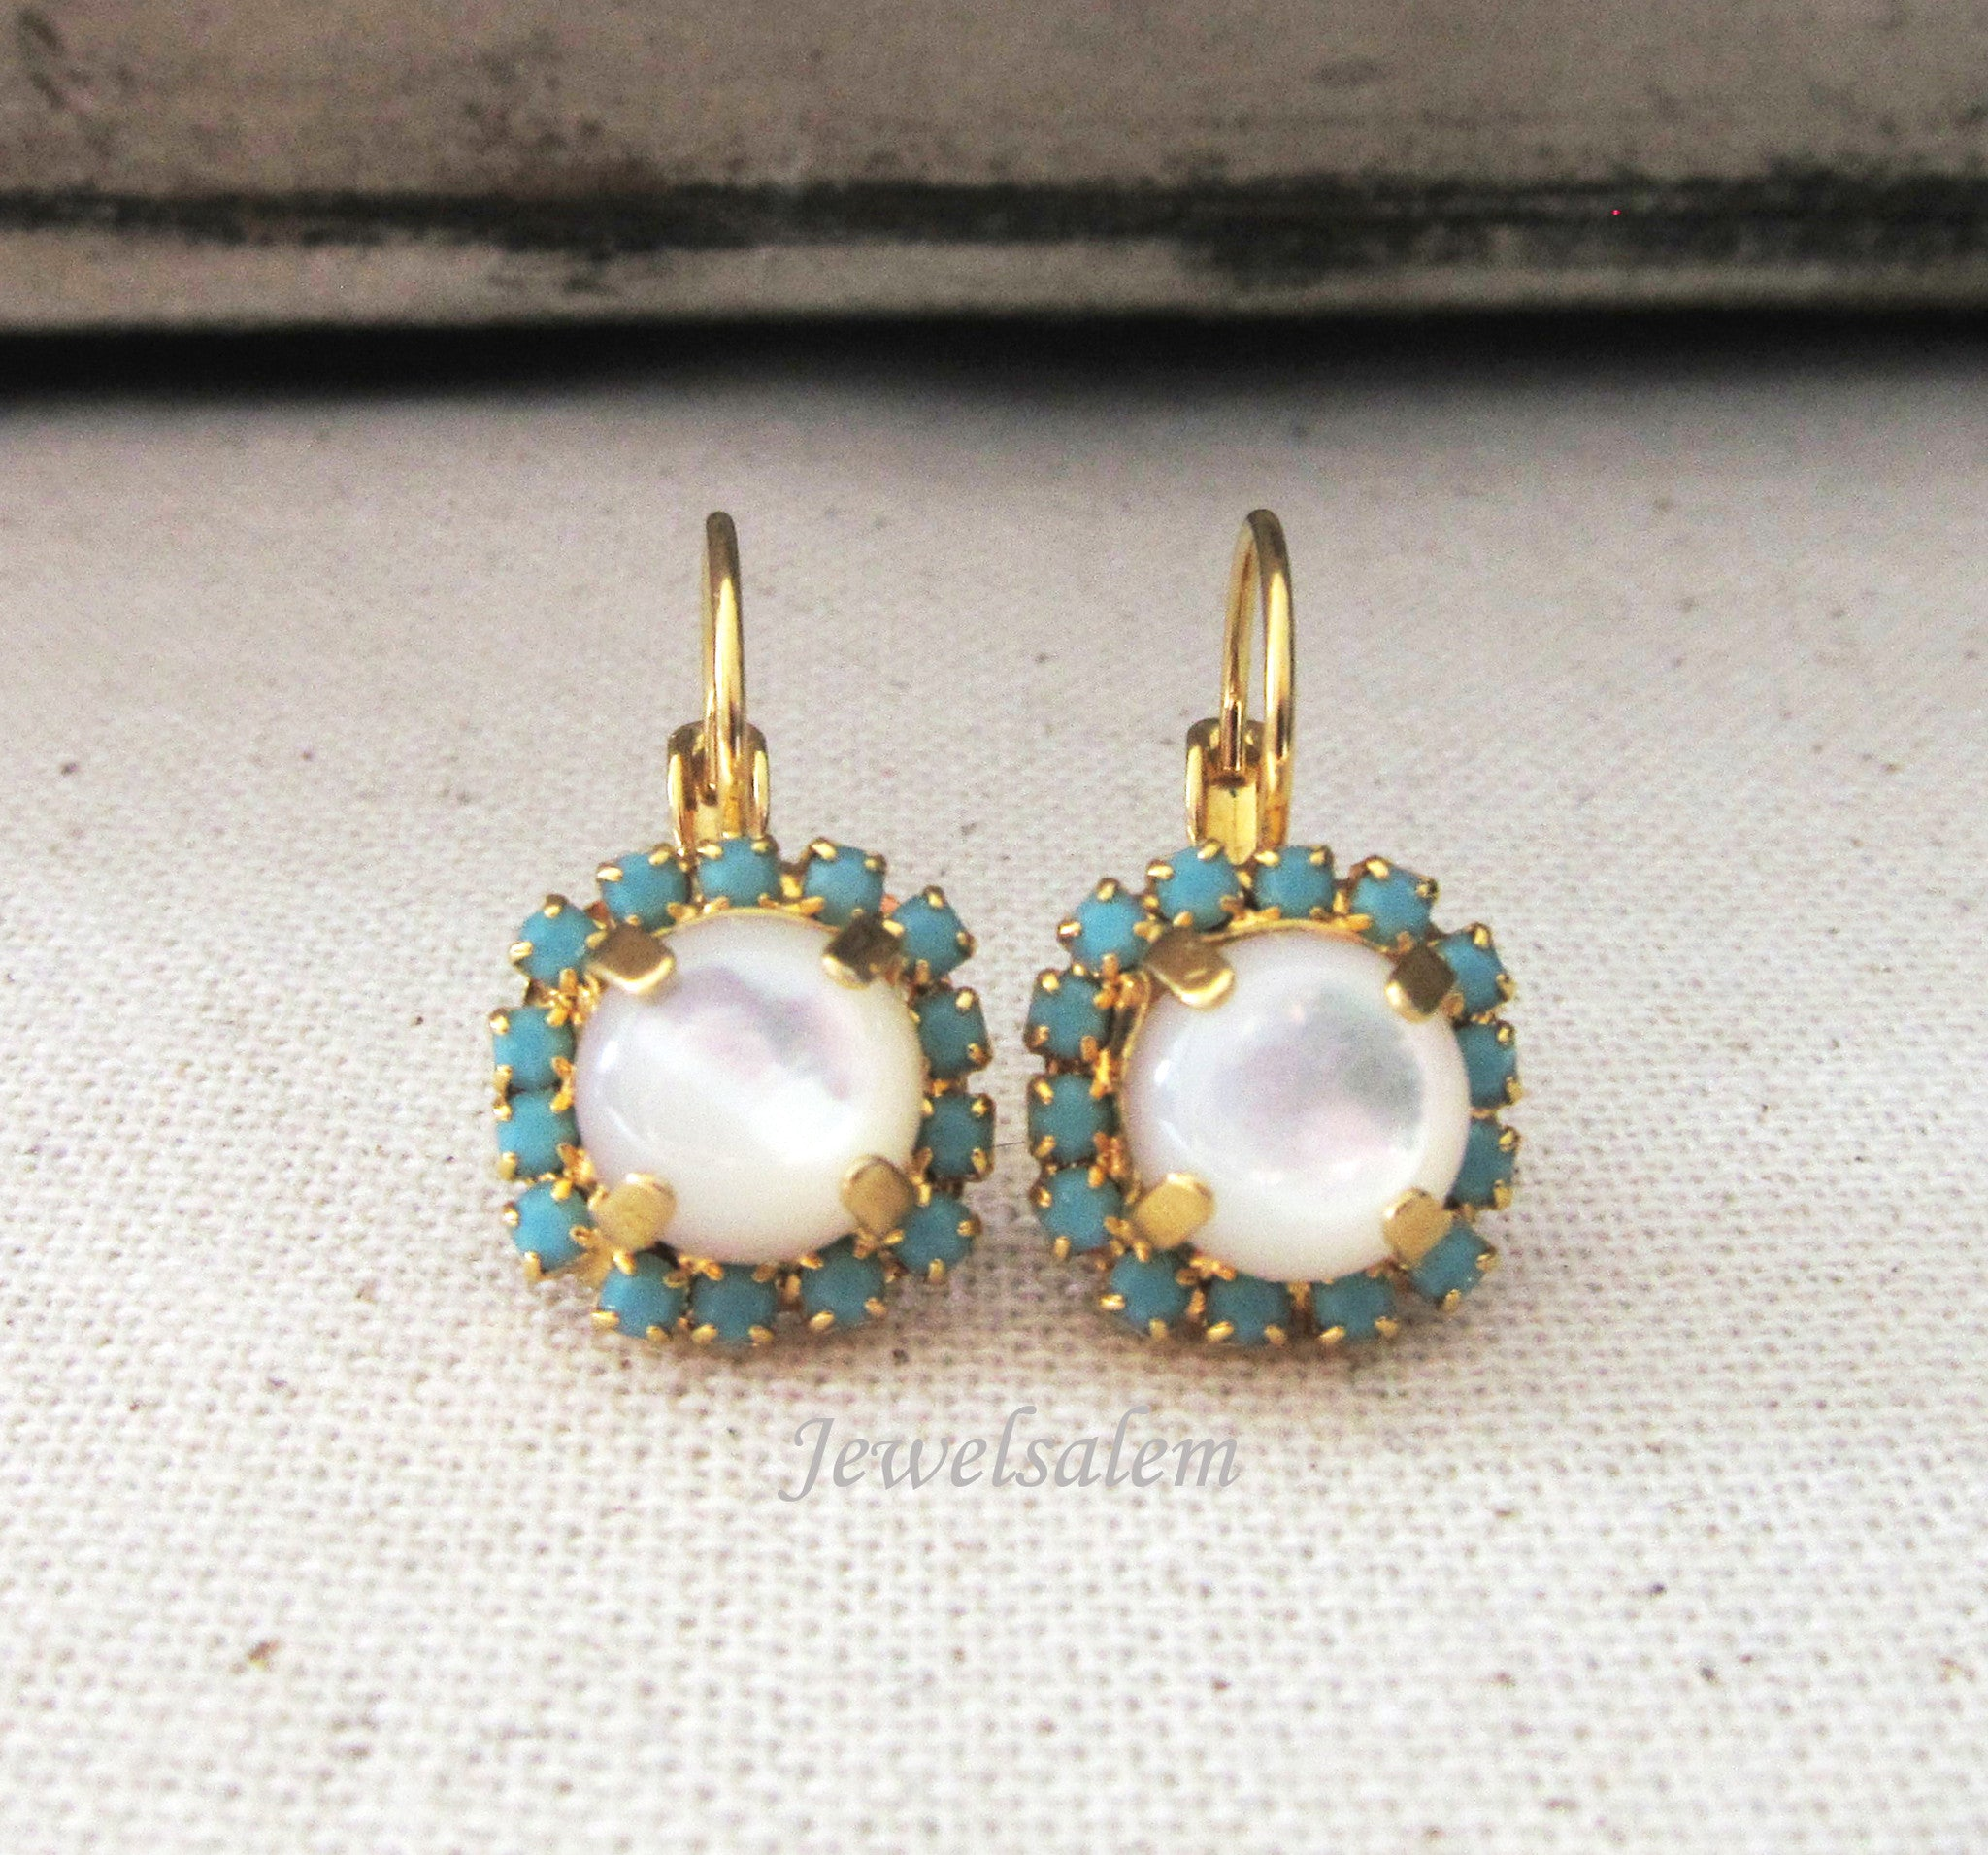 Rhinestone Pearl Earrings, Mother of Pearl Earrings, Elegant Bridal Jewellery - Jewelsalem